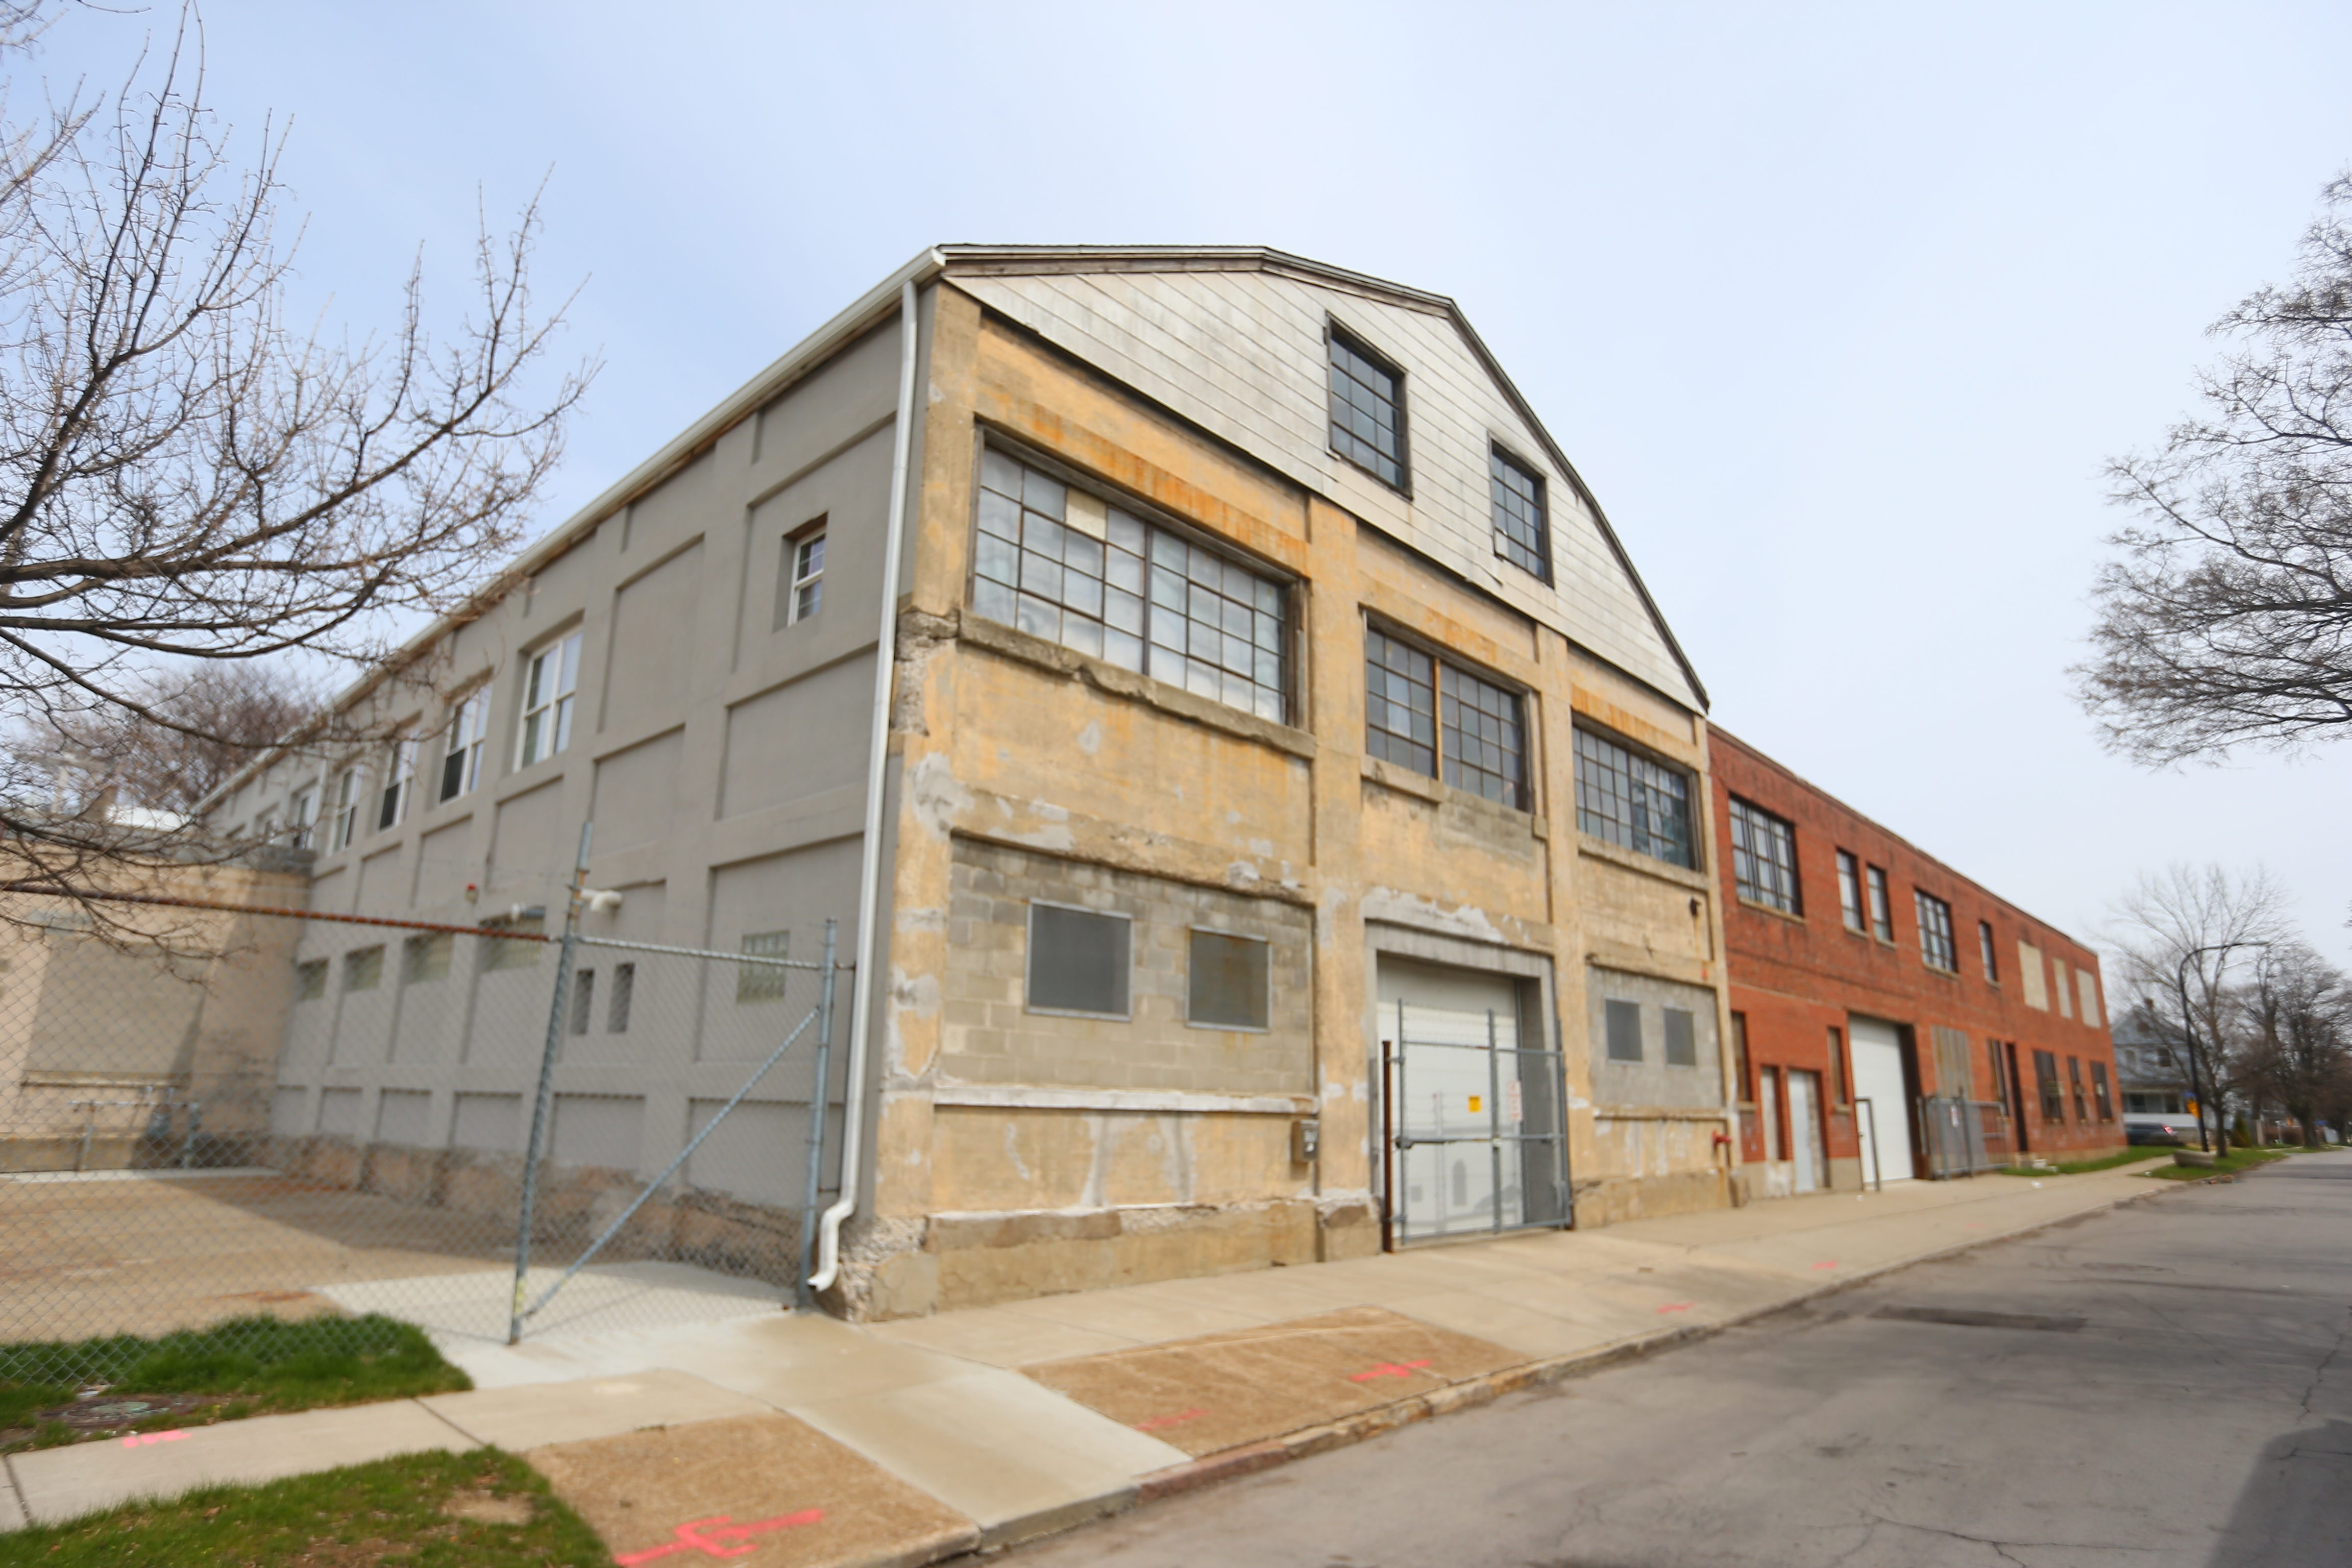 The former George A. Otis Bed Manufacturing building at 170 Florida St. in Buffalo may be converted into apartments. (John Hickey/Buffalo News)